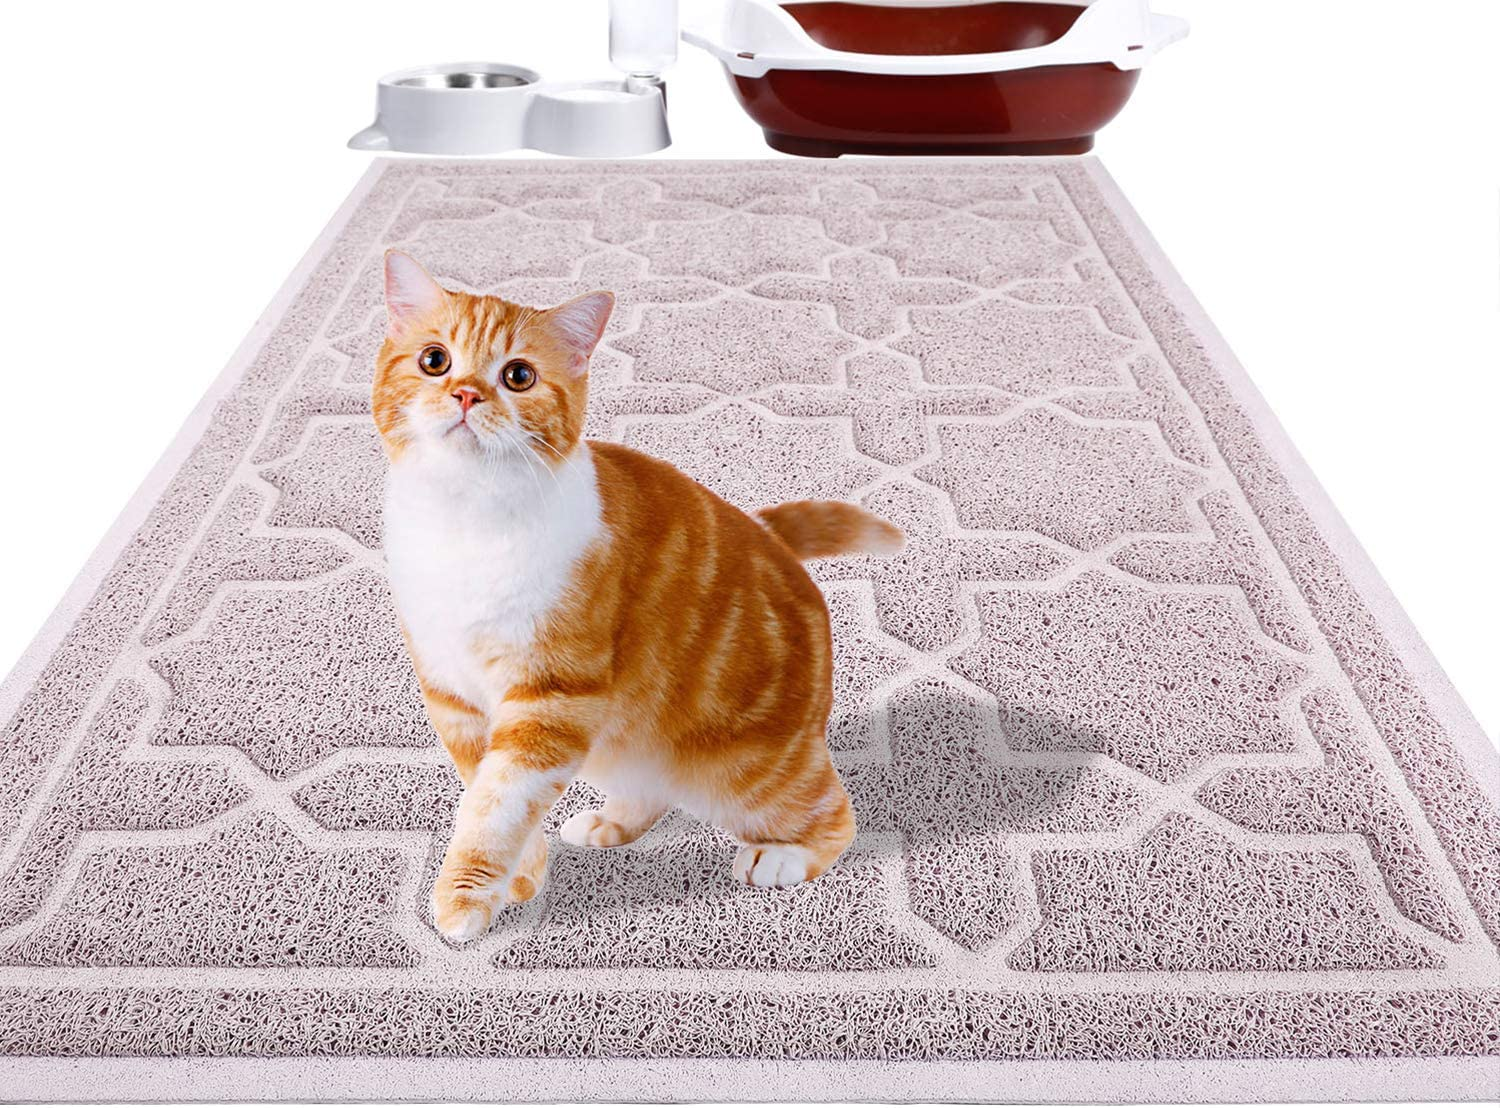 Yimobra Durable Cat Litter Mat, XL Jumbo 35.4 x 23.6 Inches, Easy Clean Cat Mats, Non-Slip, Water Resistant, Traps for Litter Boxes, Pet Litter Floor Mats, Soft, No Phthalate